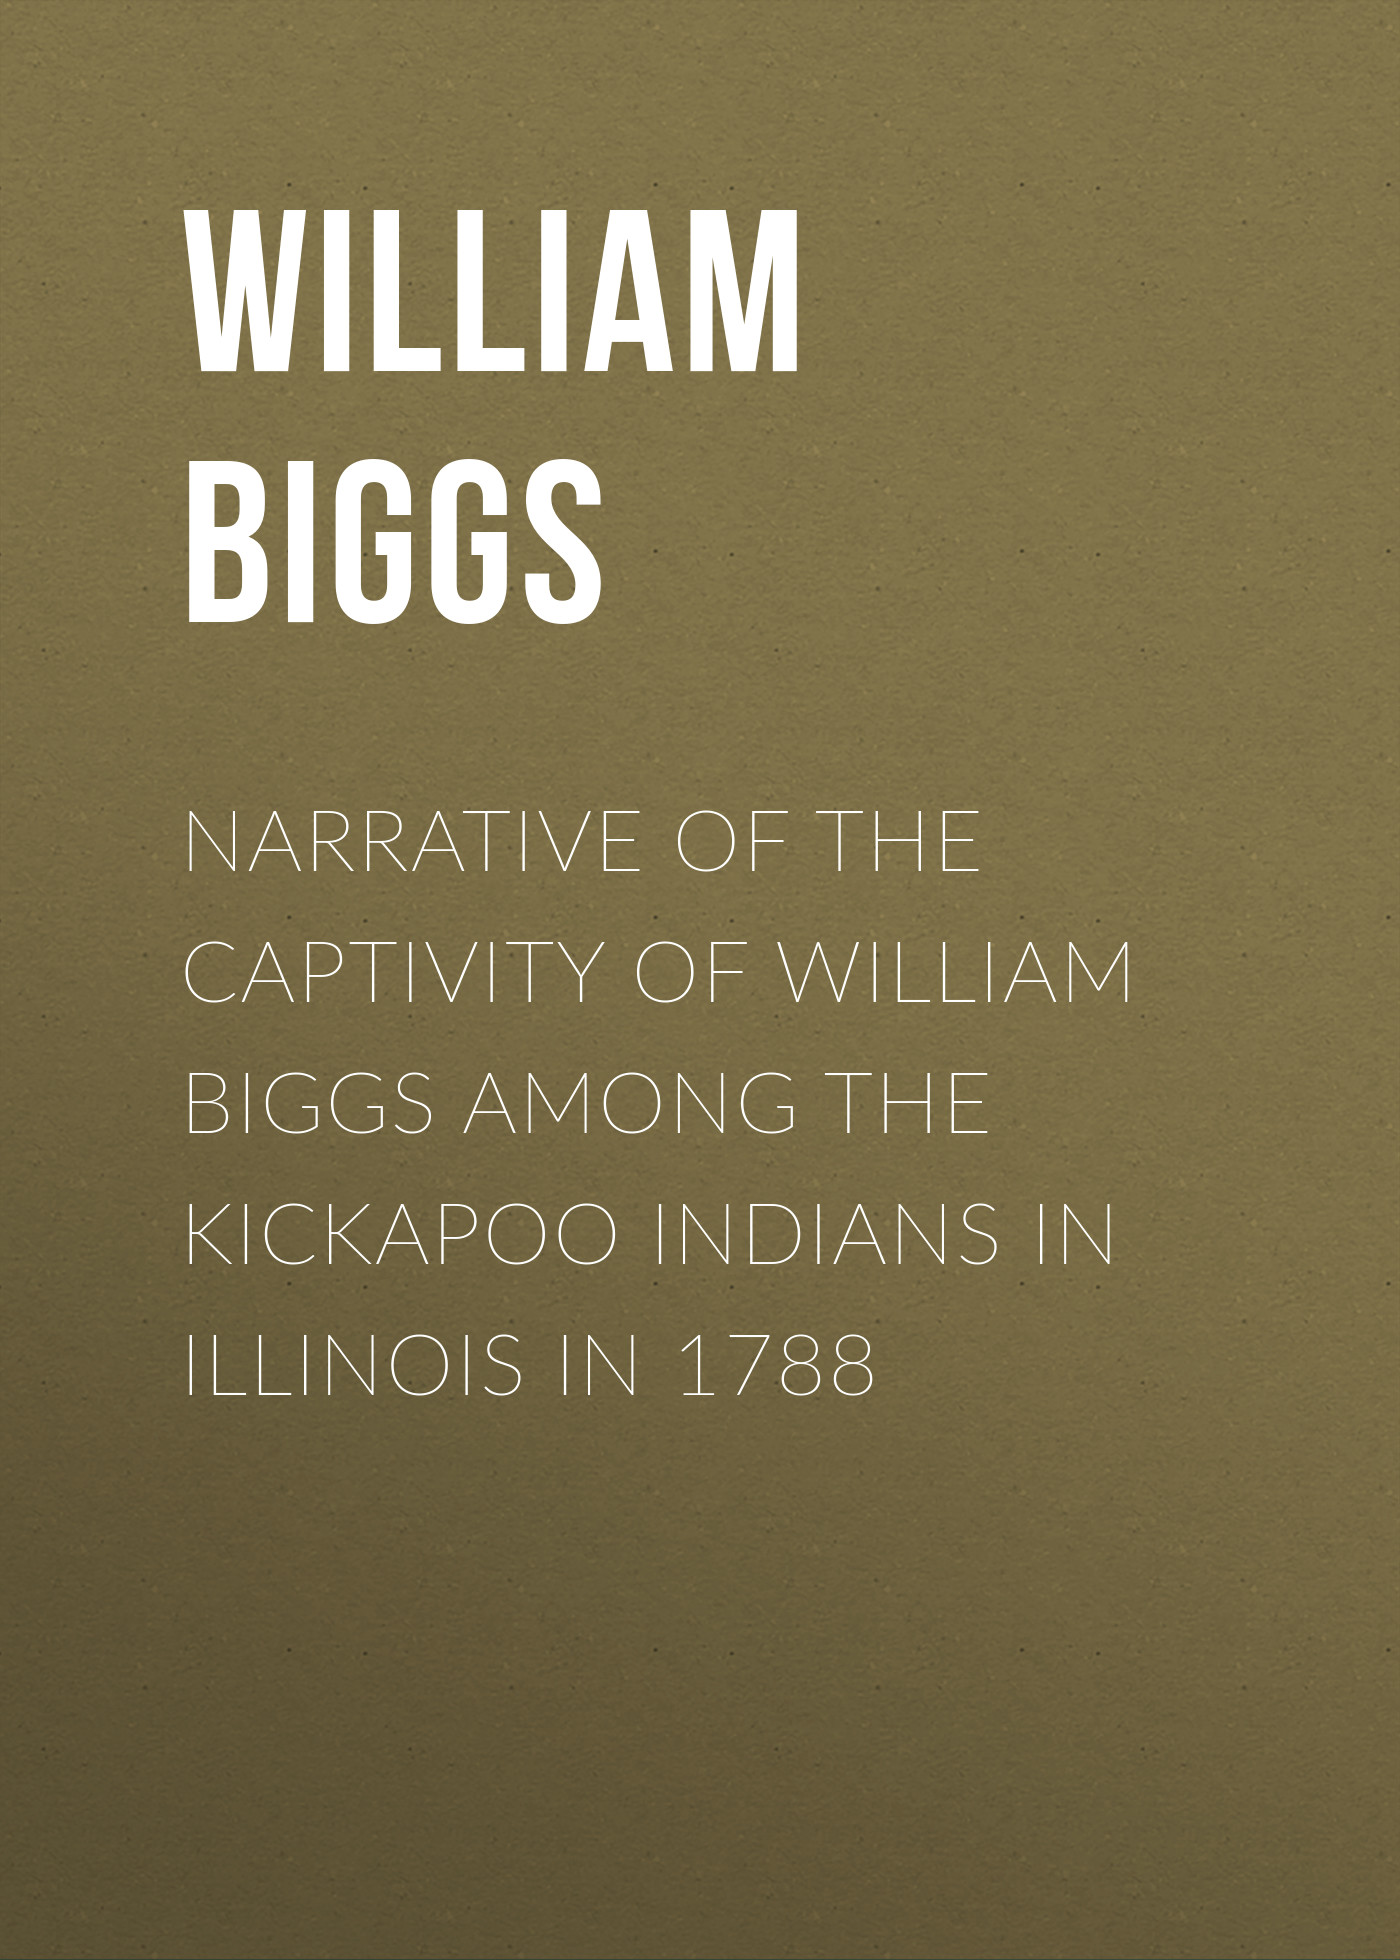 Biggs William Narrative of the Captivity of William Biggs among the Kickapoo Indians in Illinois in 1788 biggs william narrative of the captivity of william biggs among the kickapoo indians in illinois in 1788